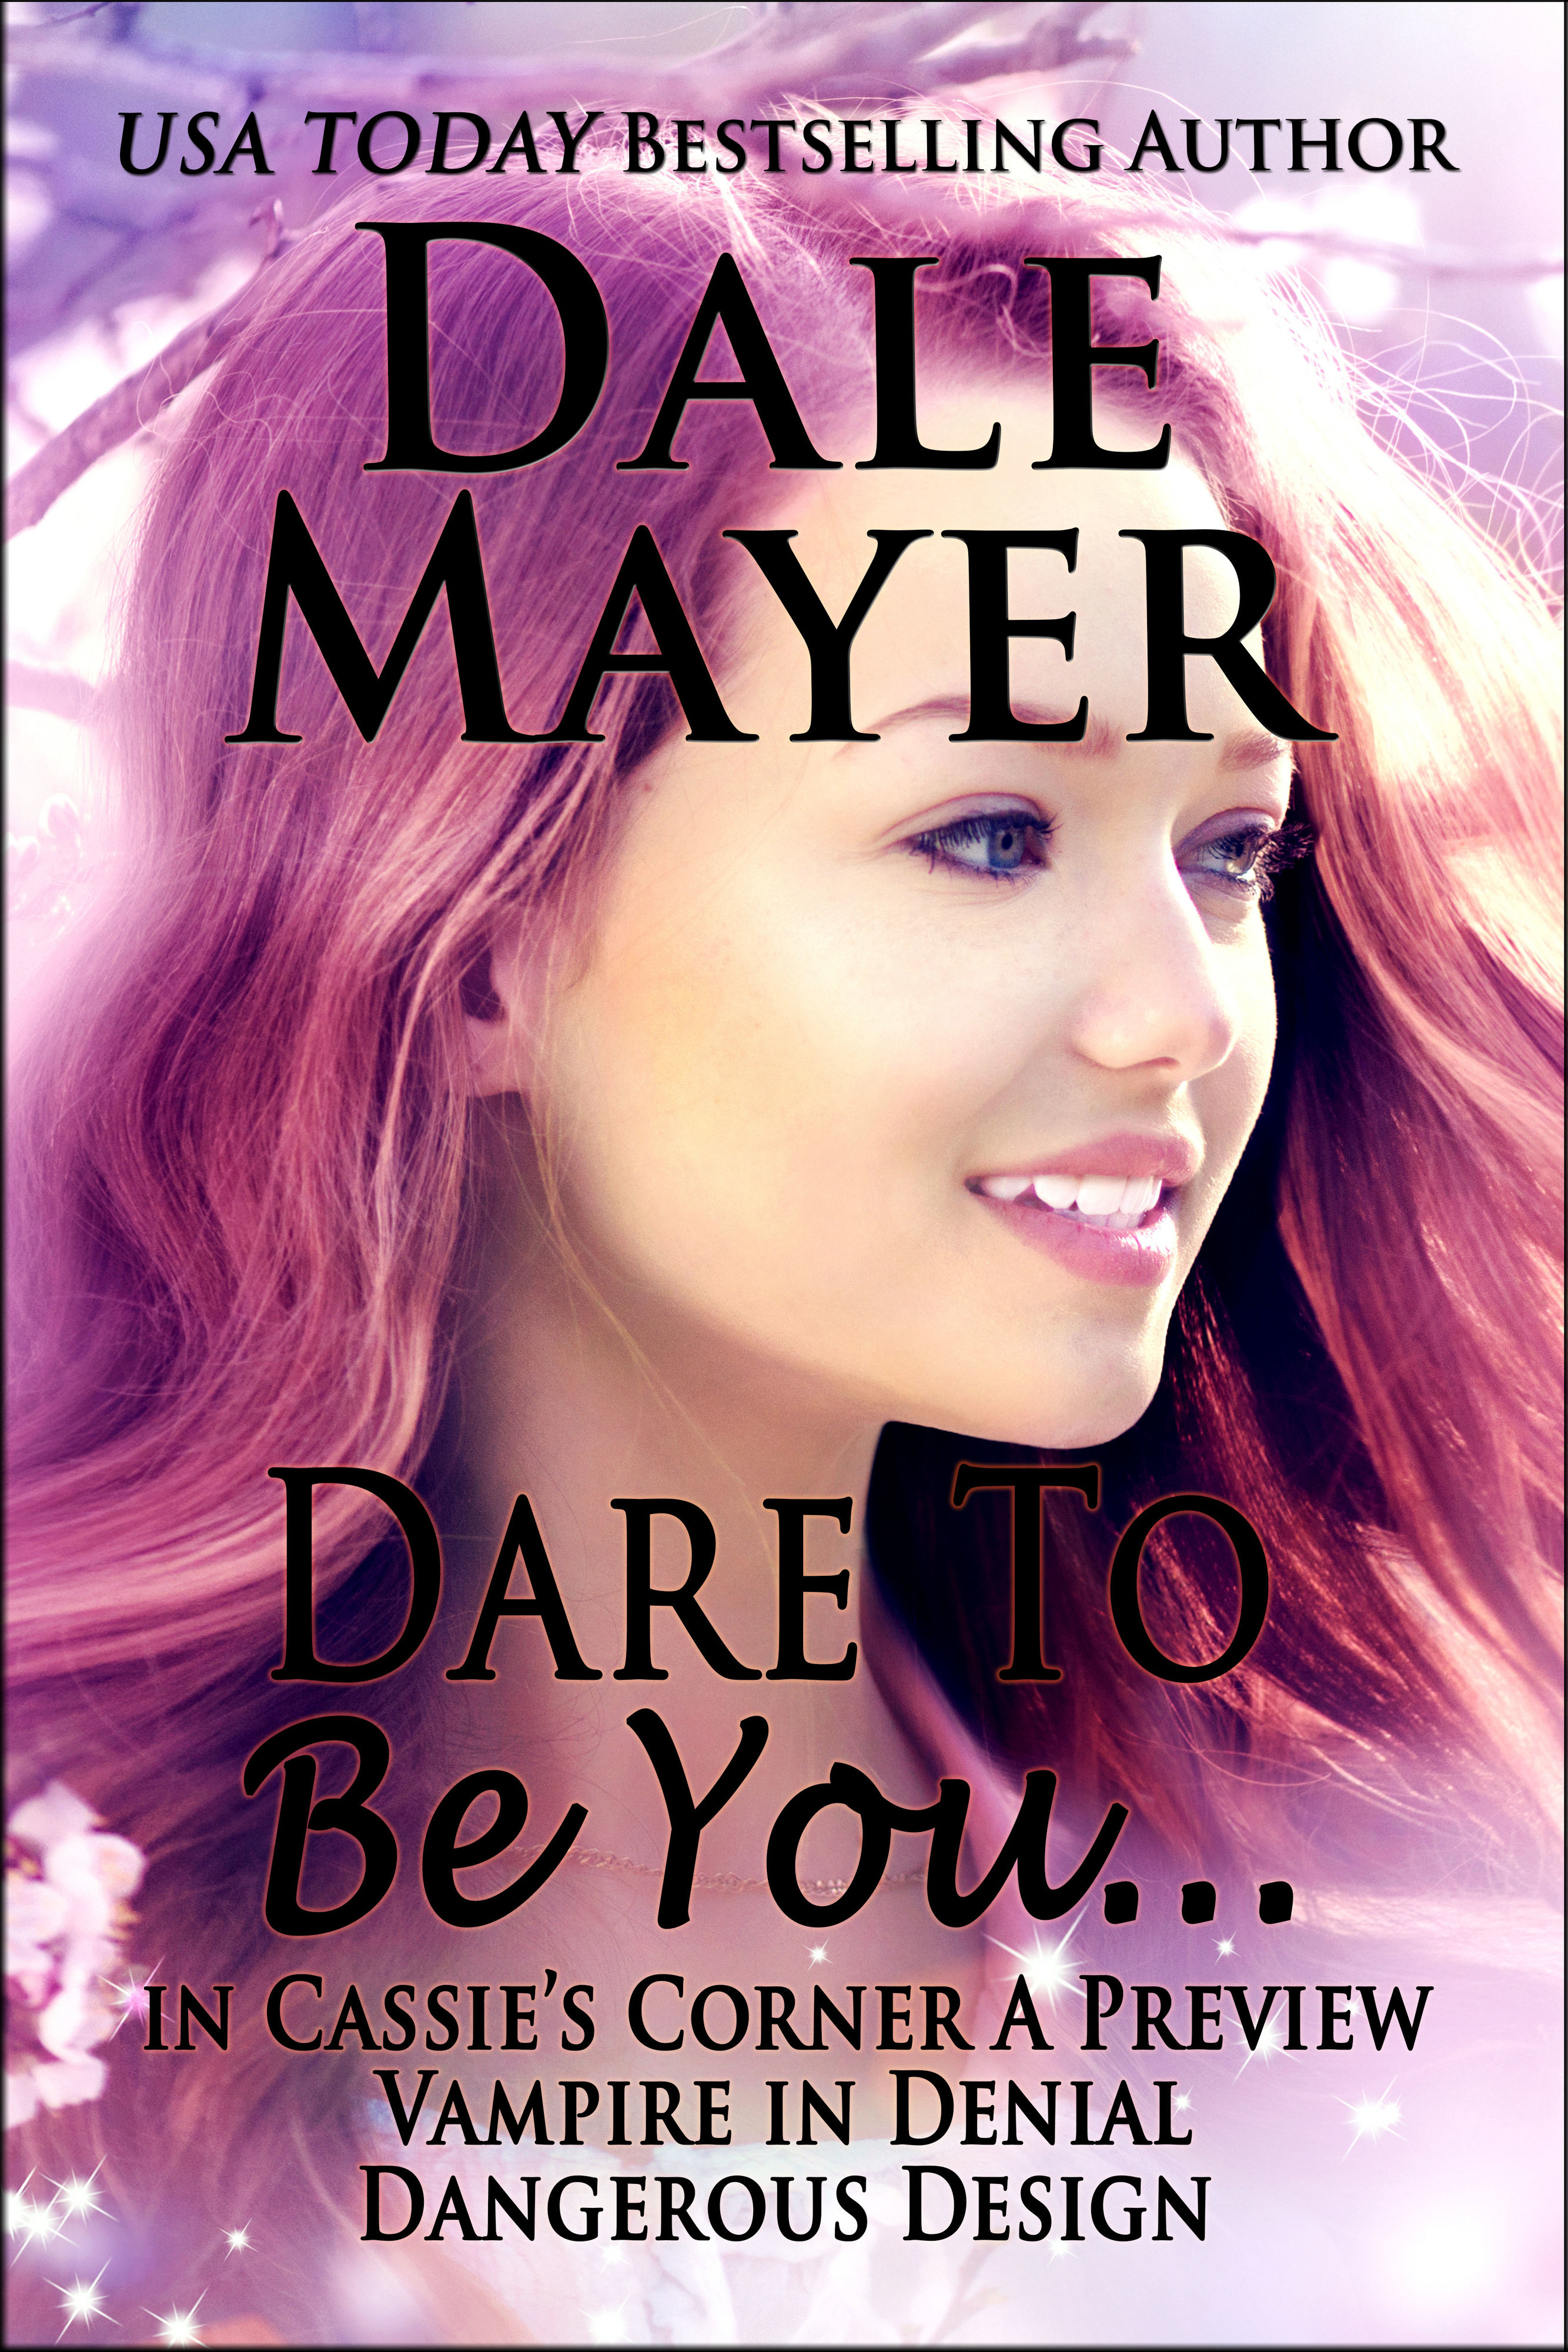 Dare To Be You... Dale Mayer